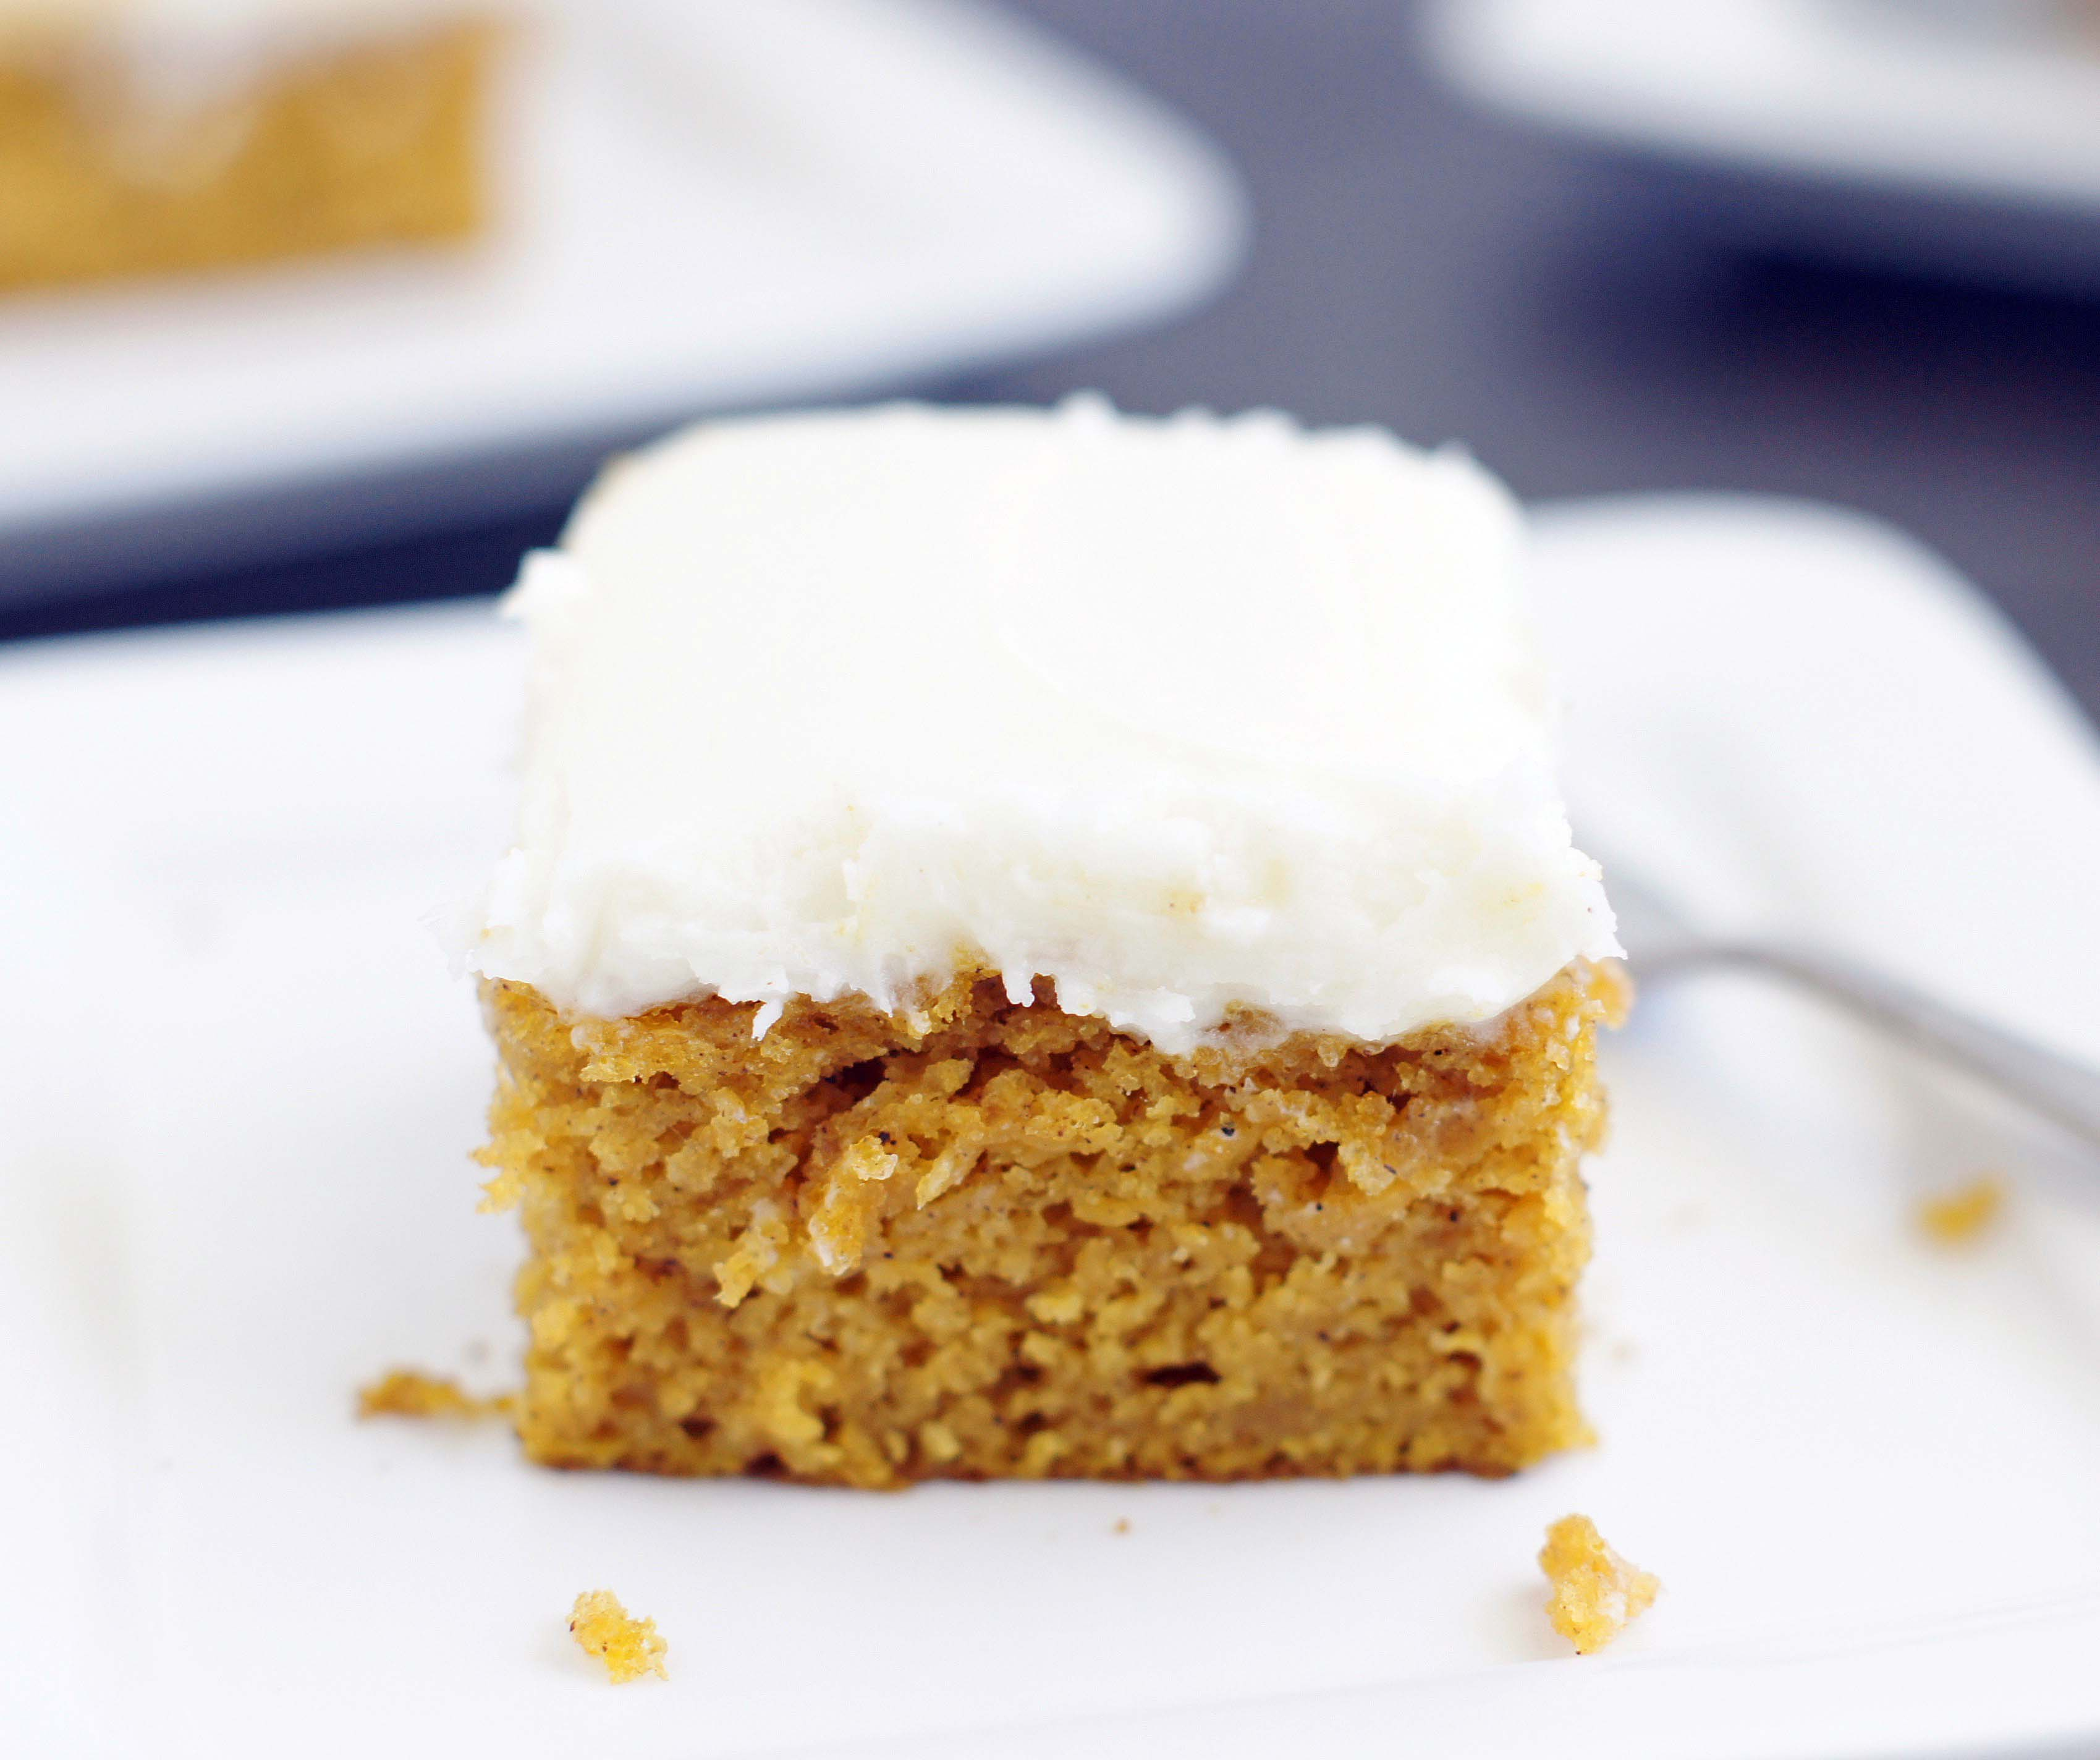 Single pumpkin bar with cream cheese frosting sitting on a plate